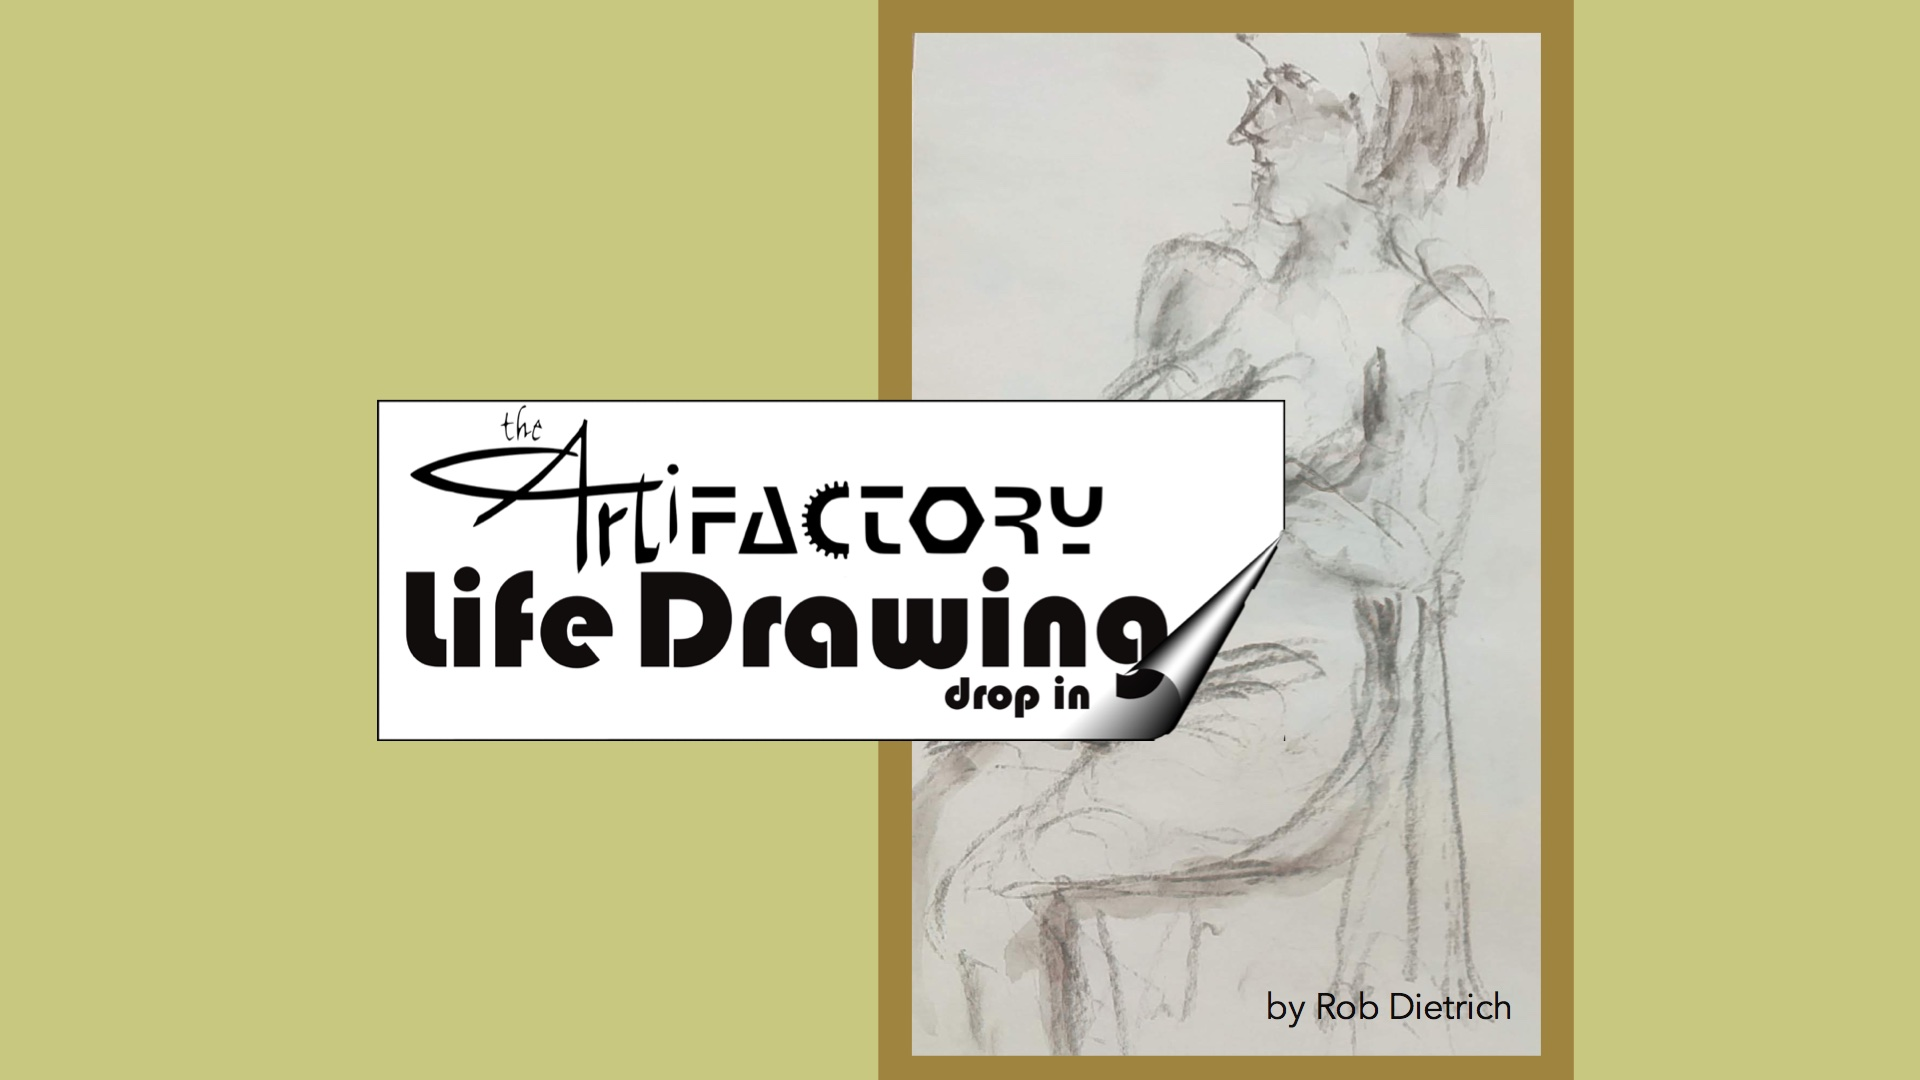 February Life Drawing